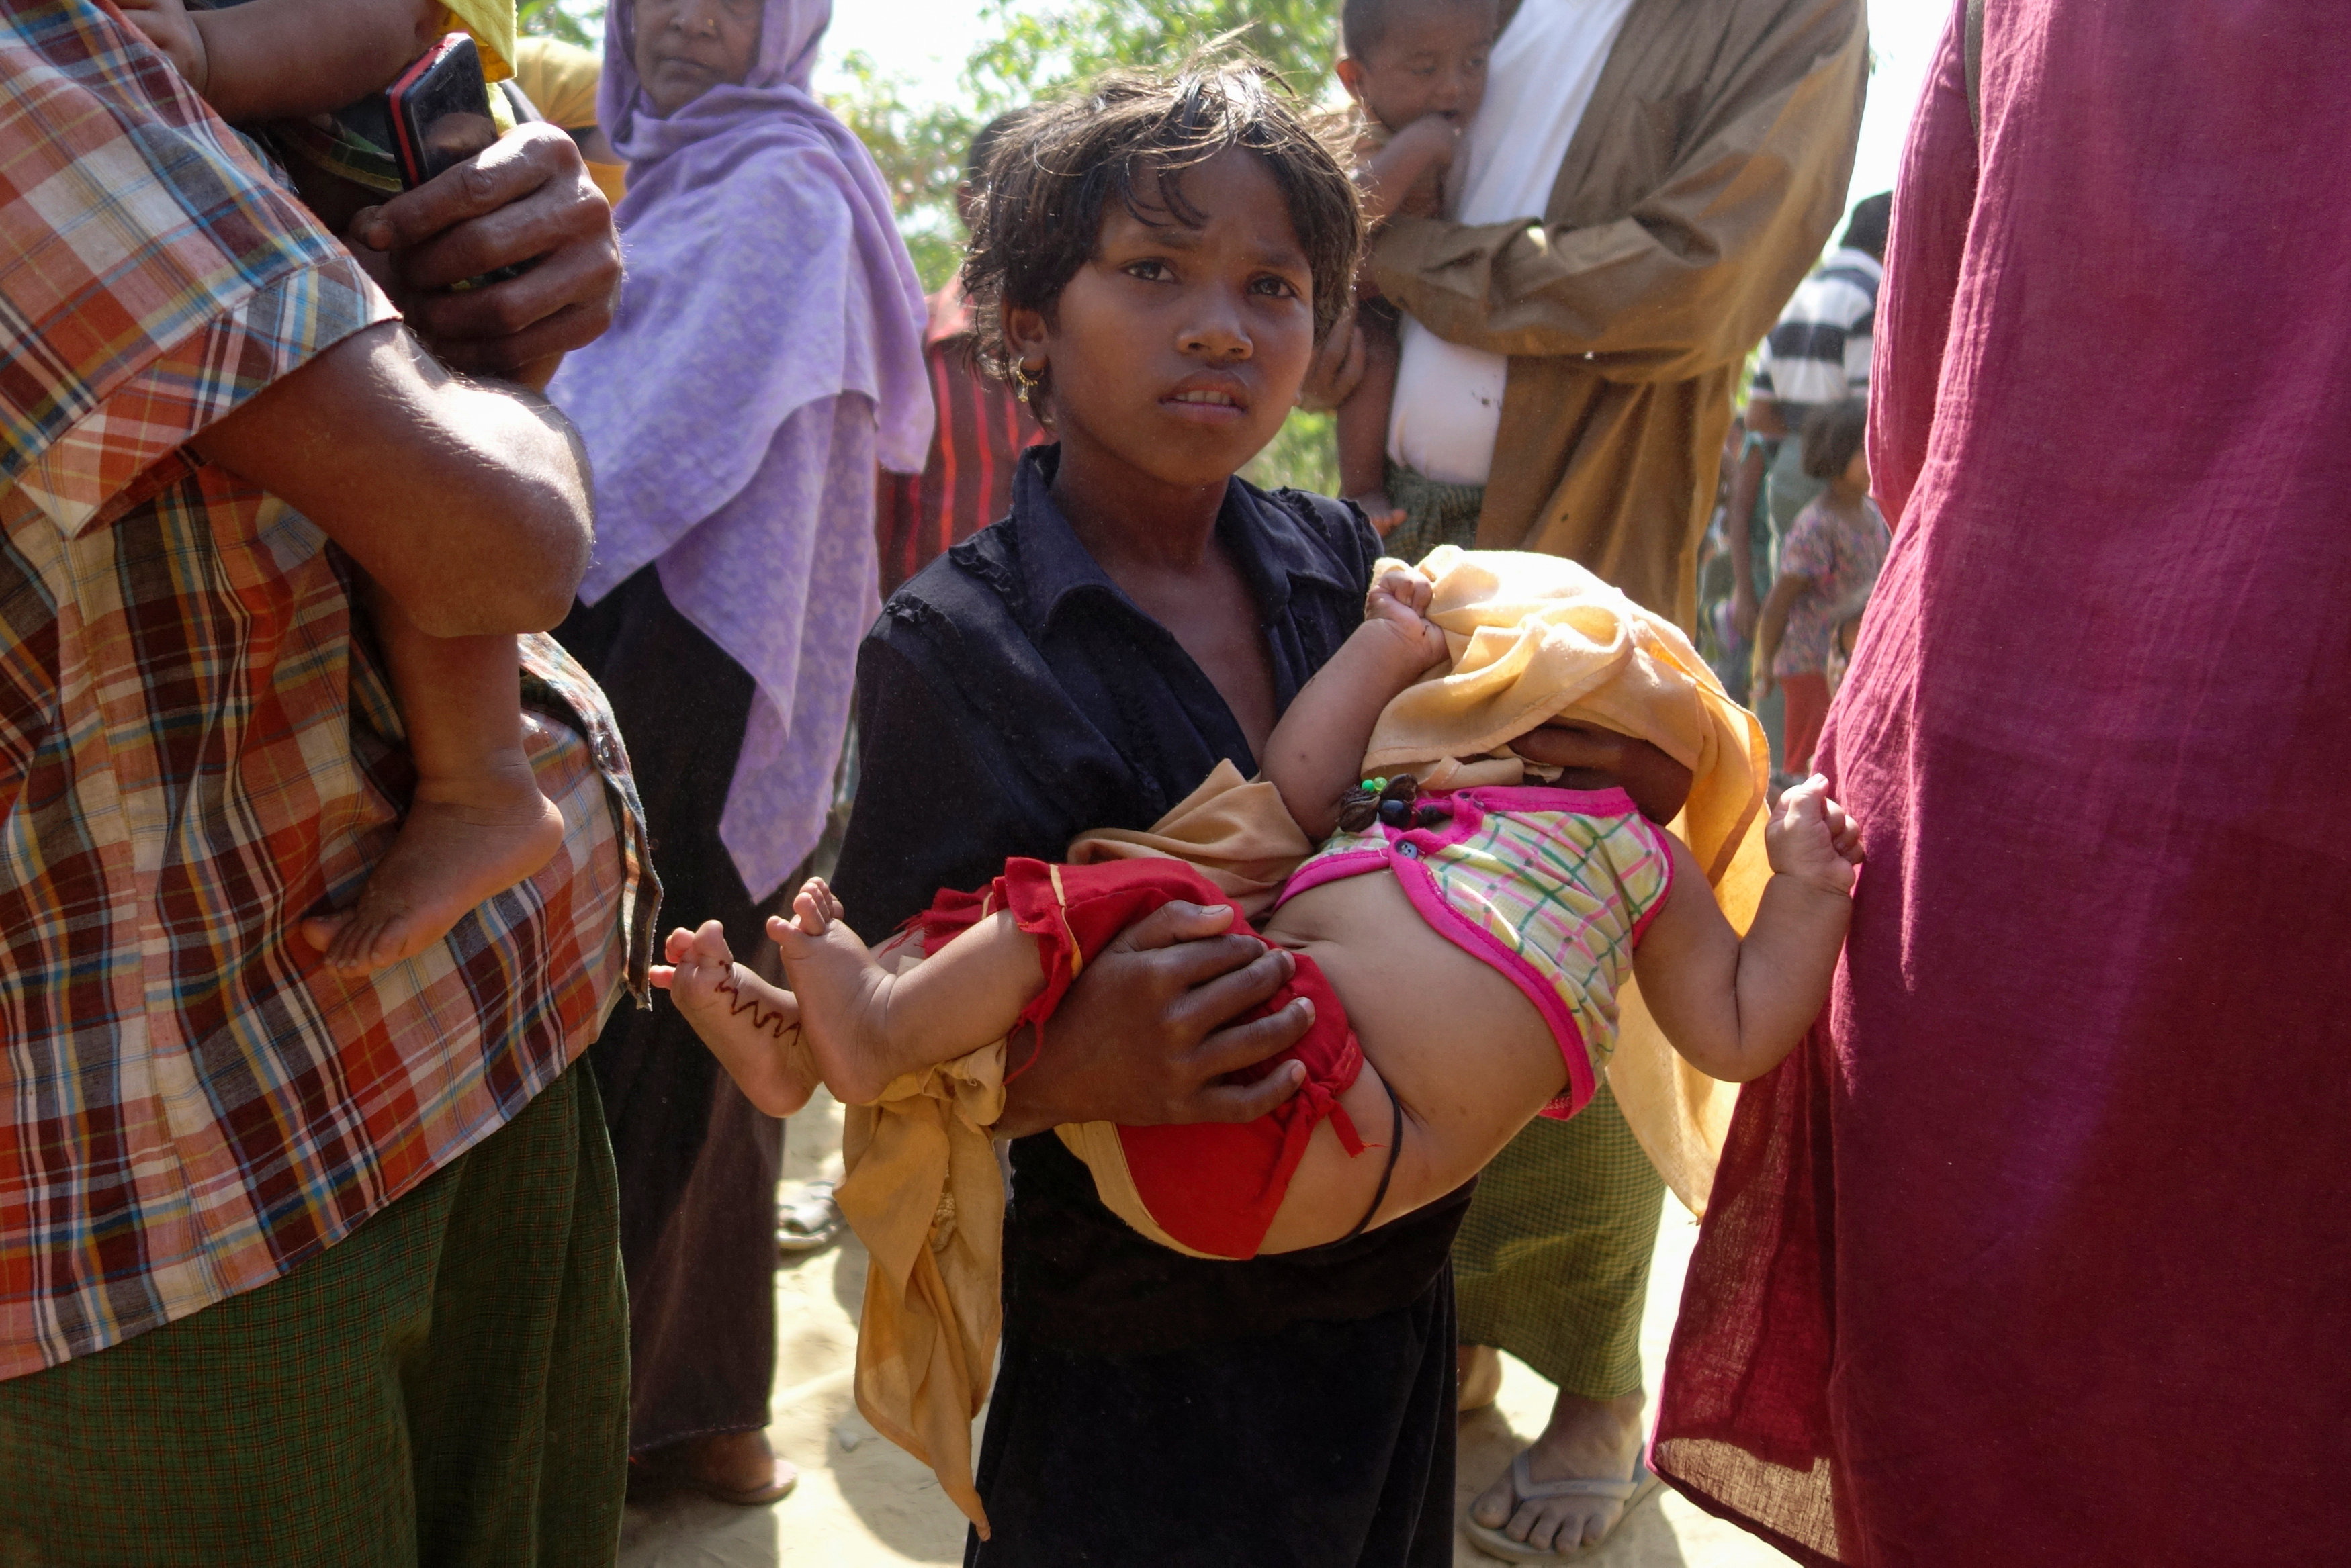 A Rohingya refugee girl carries a baby outside the food distribution center at Kutupalang unregistered Refugee Camp in Cox's Bazar, Bangladesh, February 27, 2017. Credit: Reuters/Claudia Jardim